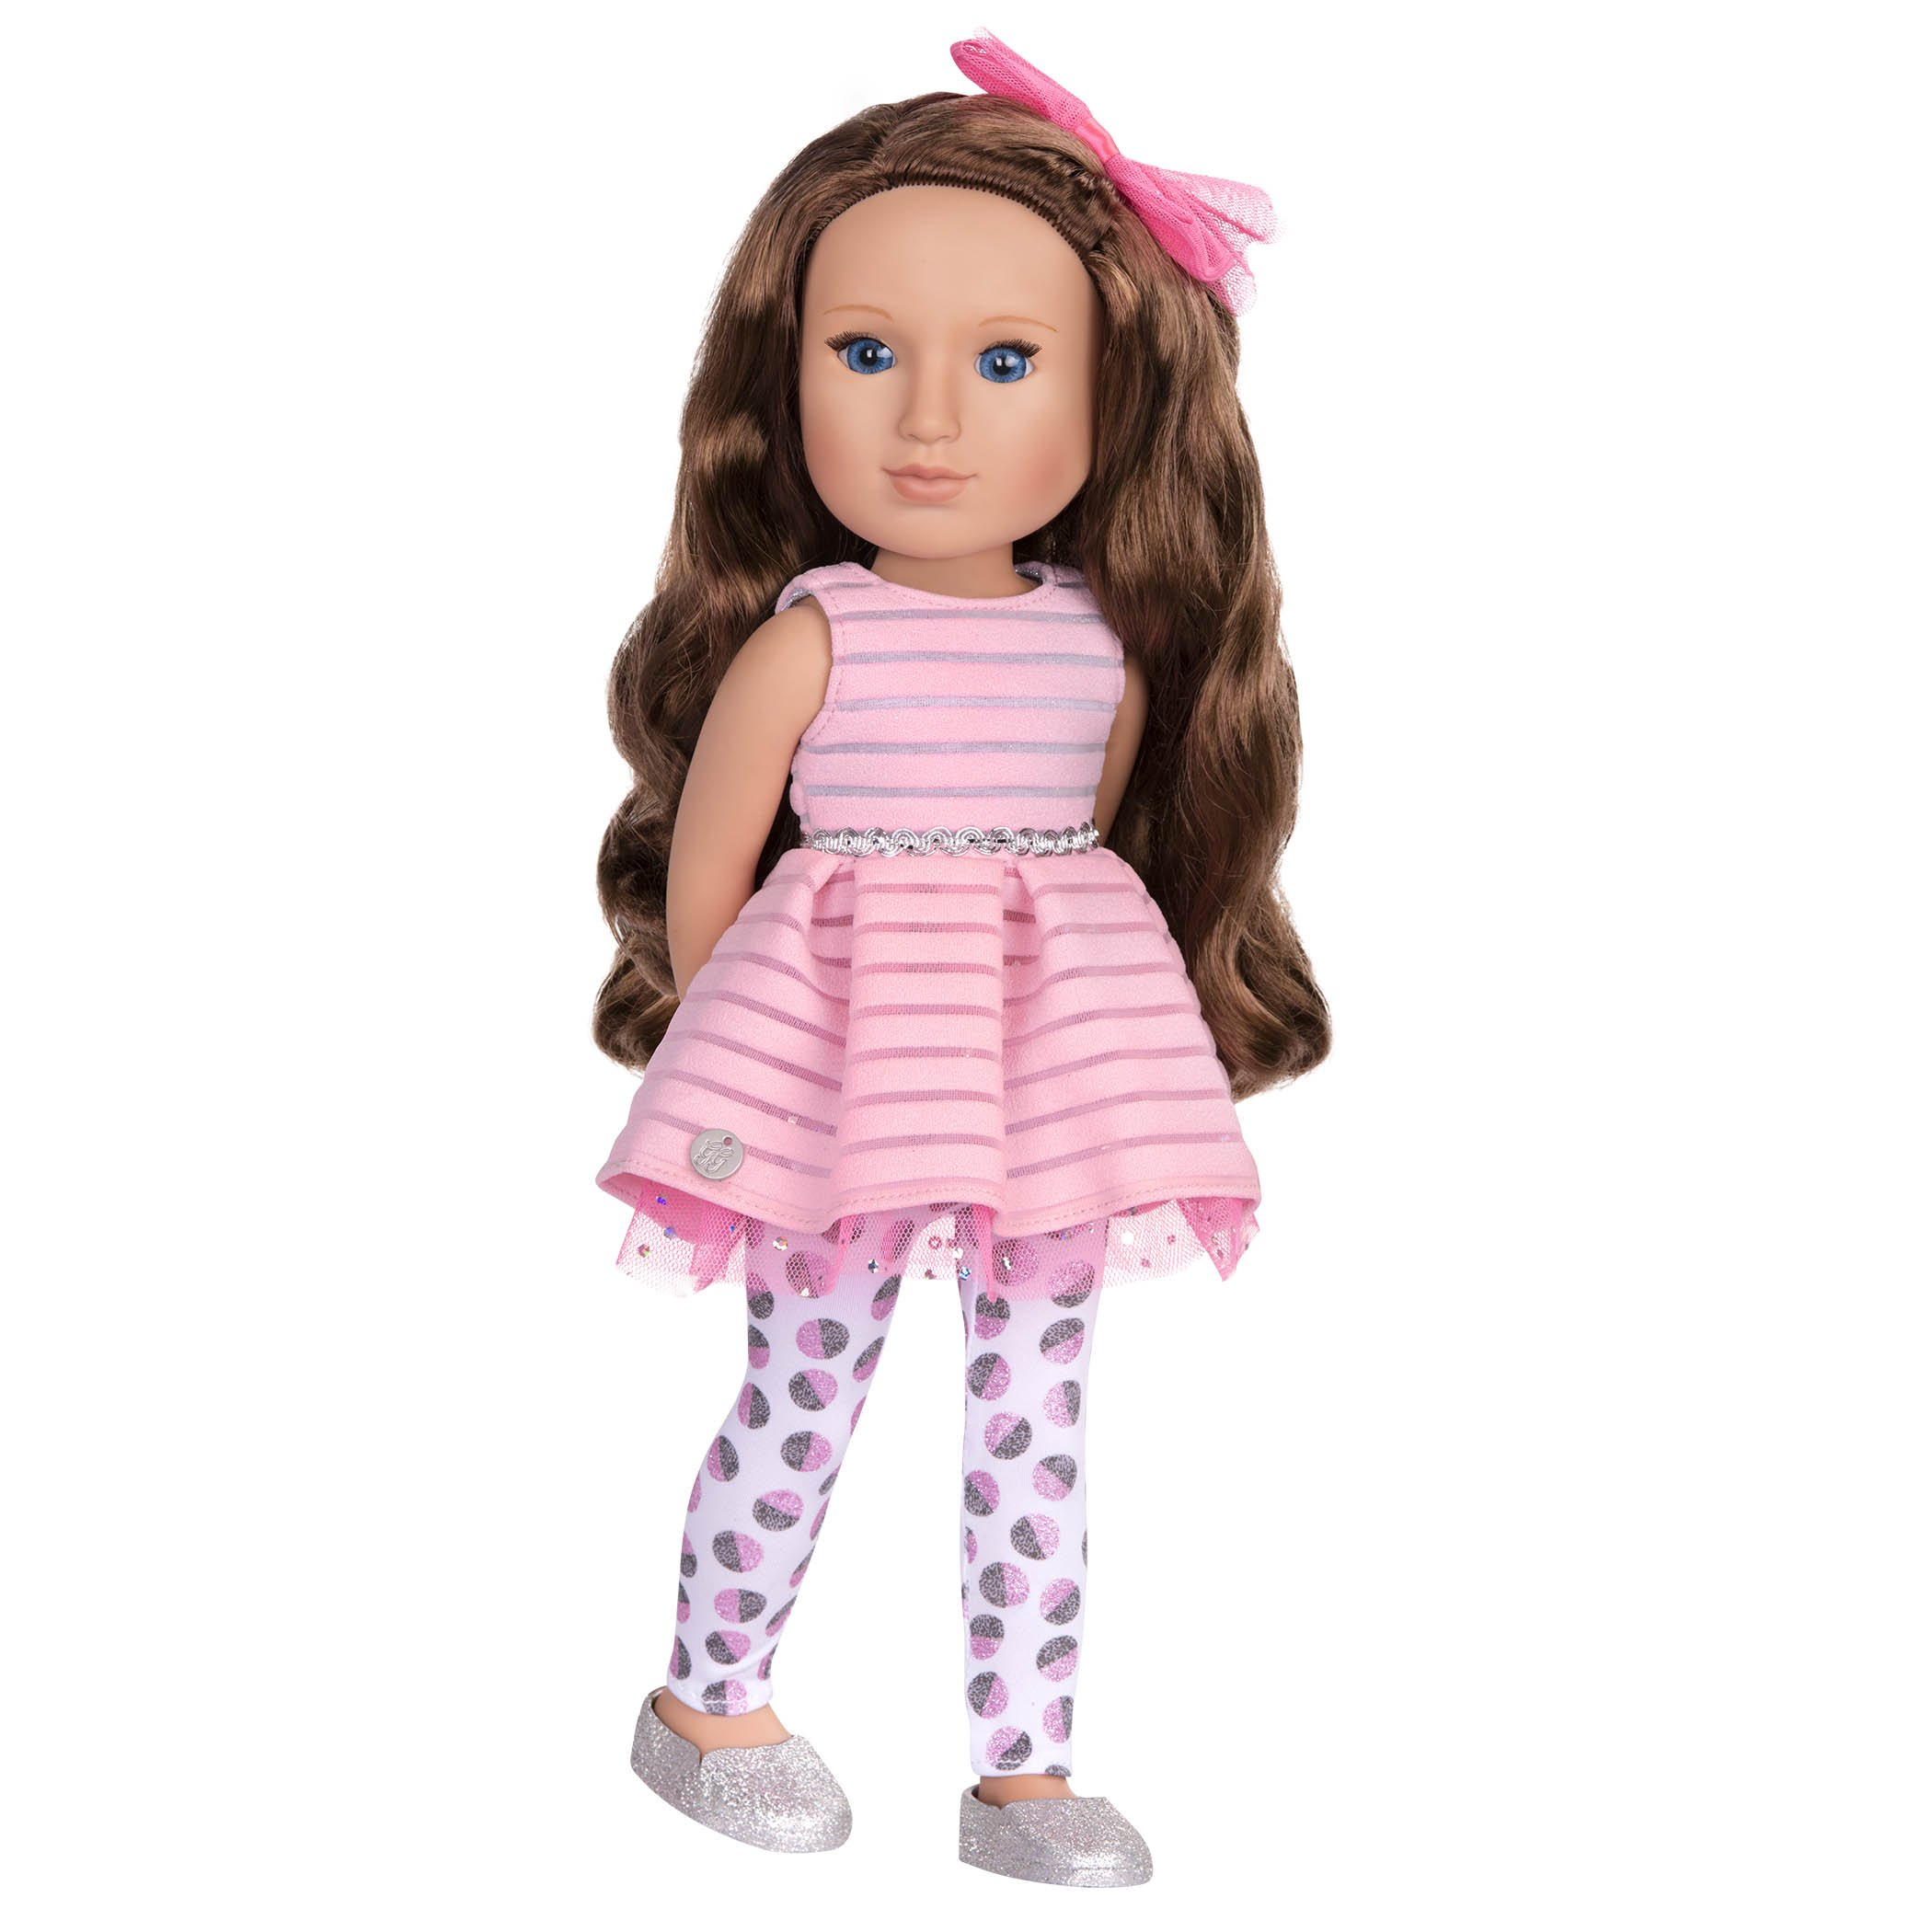 Glitter Girls by Battat - Bluebell 14 inch Fashion Doll - Dolls for Girls Age 3 and Up - Doll, Clothing and Accessories - Children's Toys